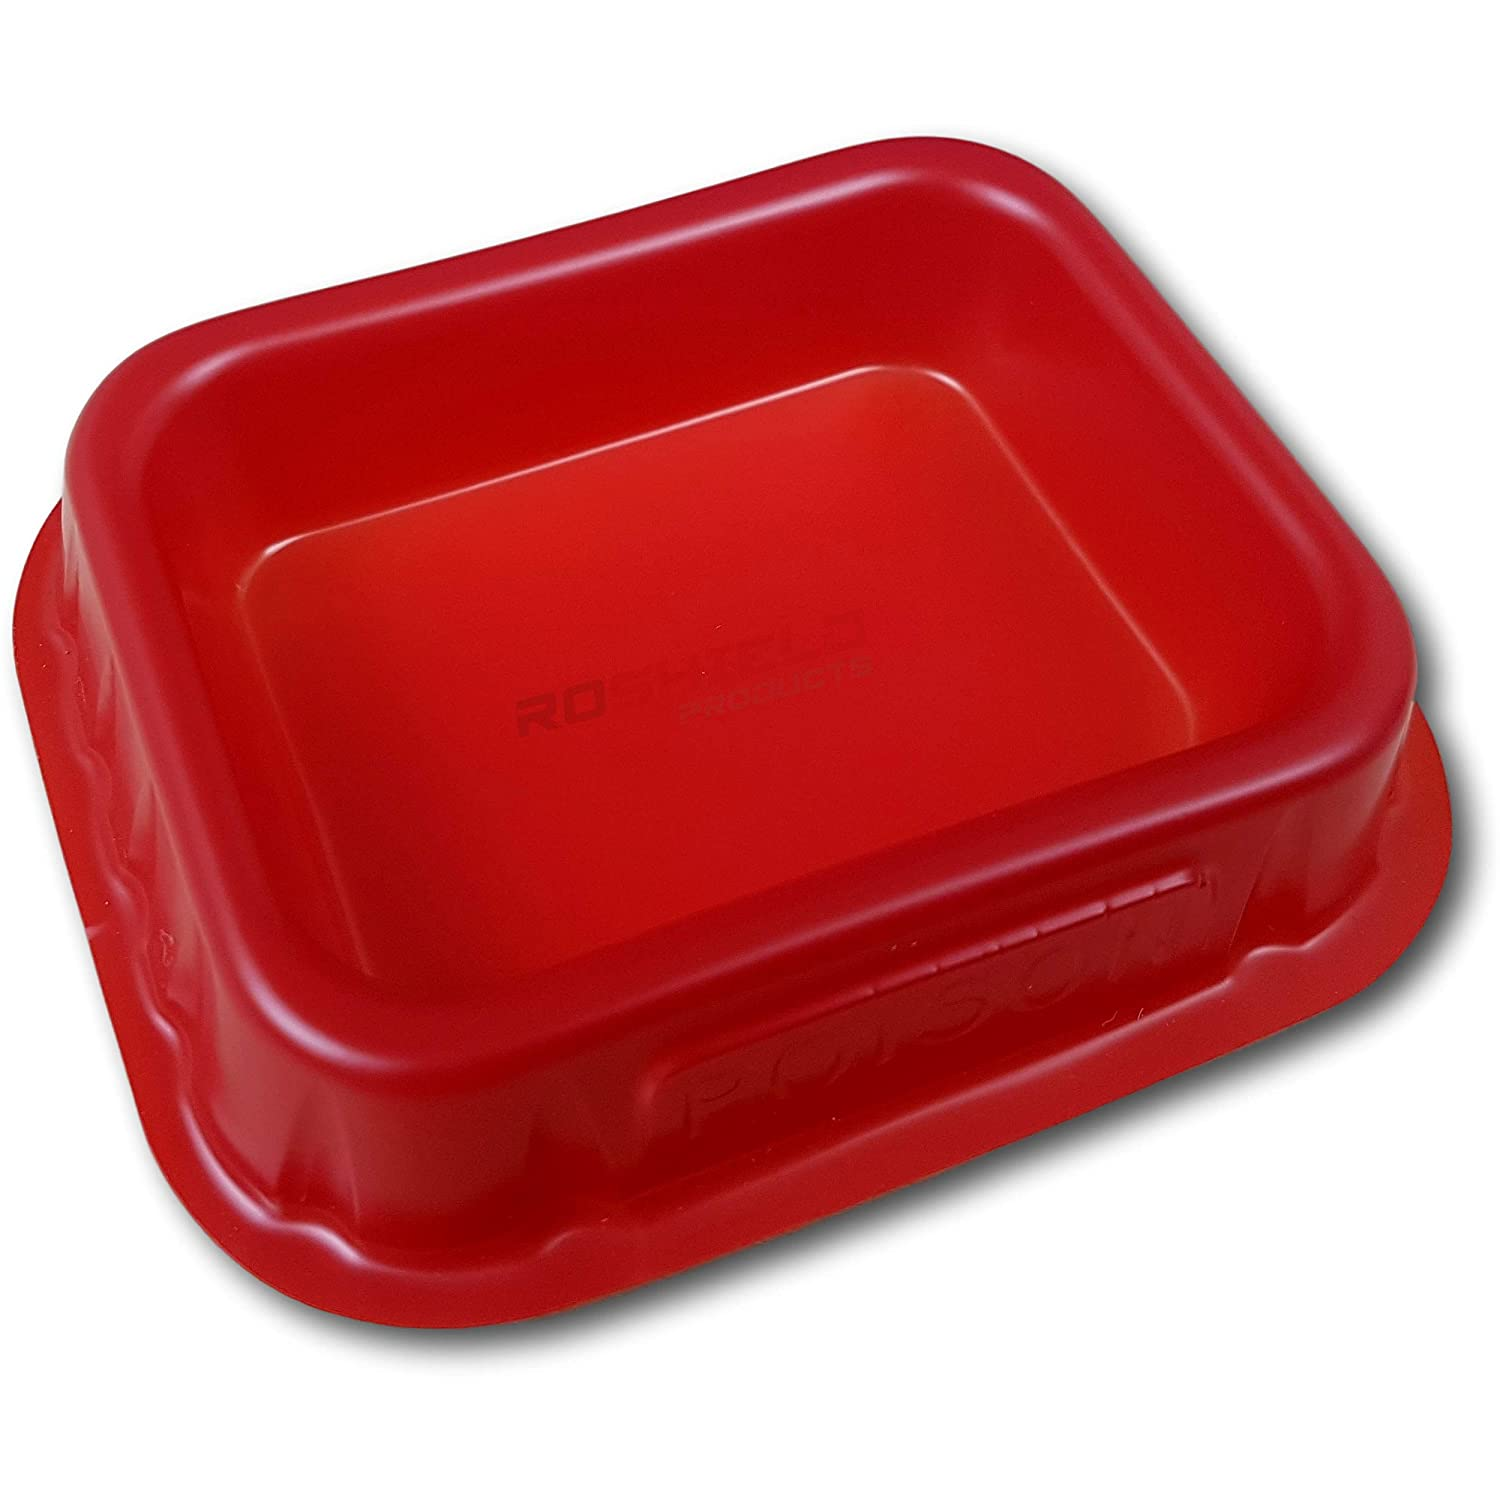 Roshield 10 x Pro Medium Plastic Bait Monitoring Trays for Mouse & Rat Control Poison Seahaven Limited